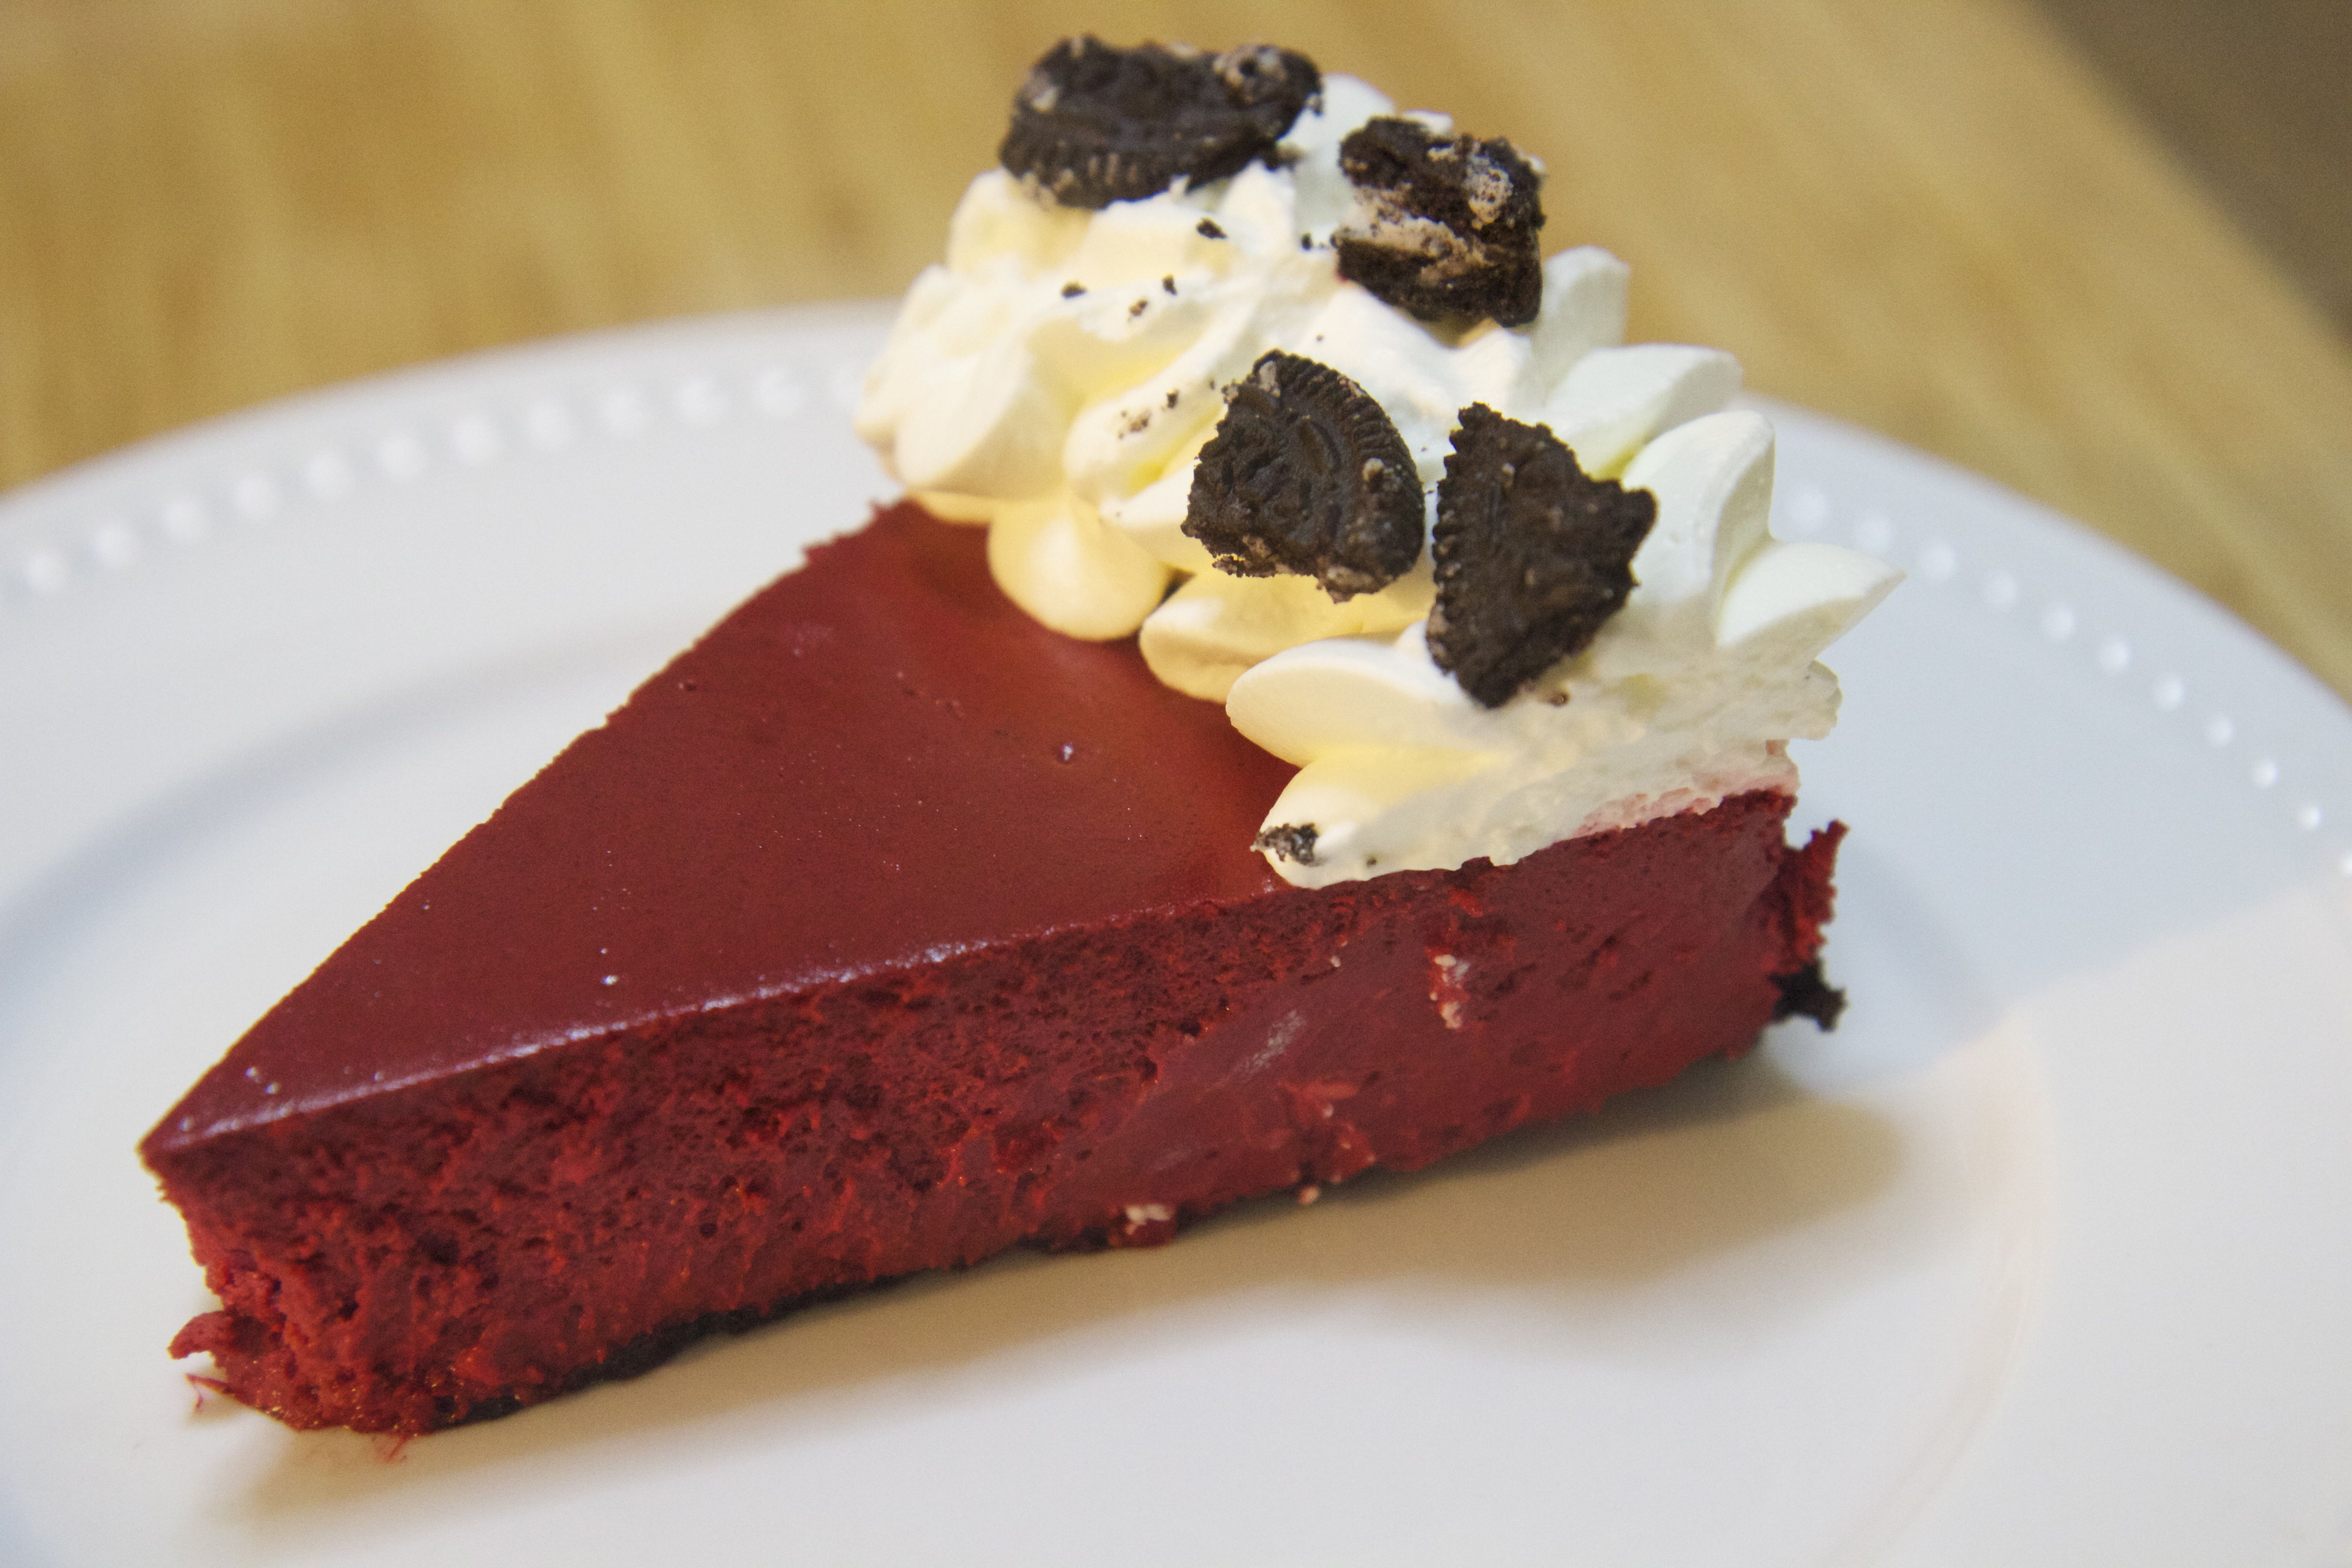 Red velvet cheesecake with an Oreo cookie crust and cream cheese frosting.